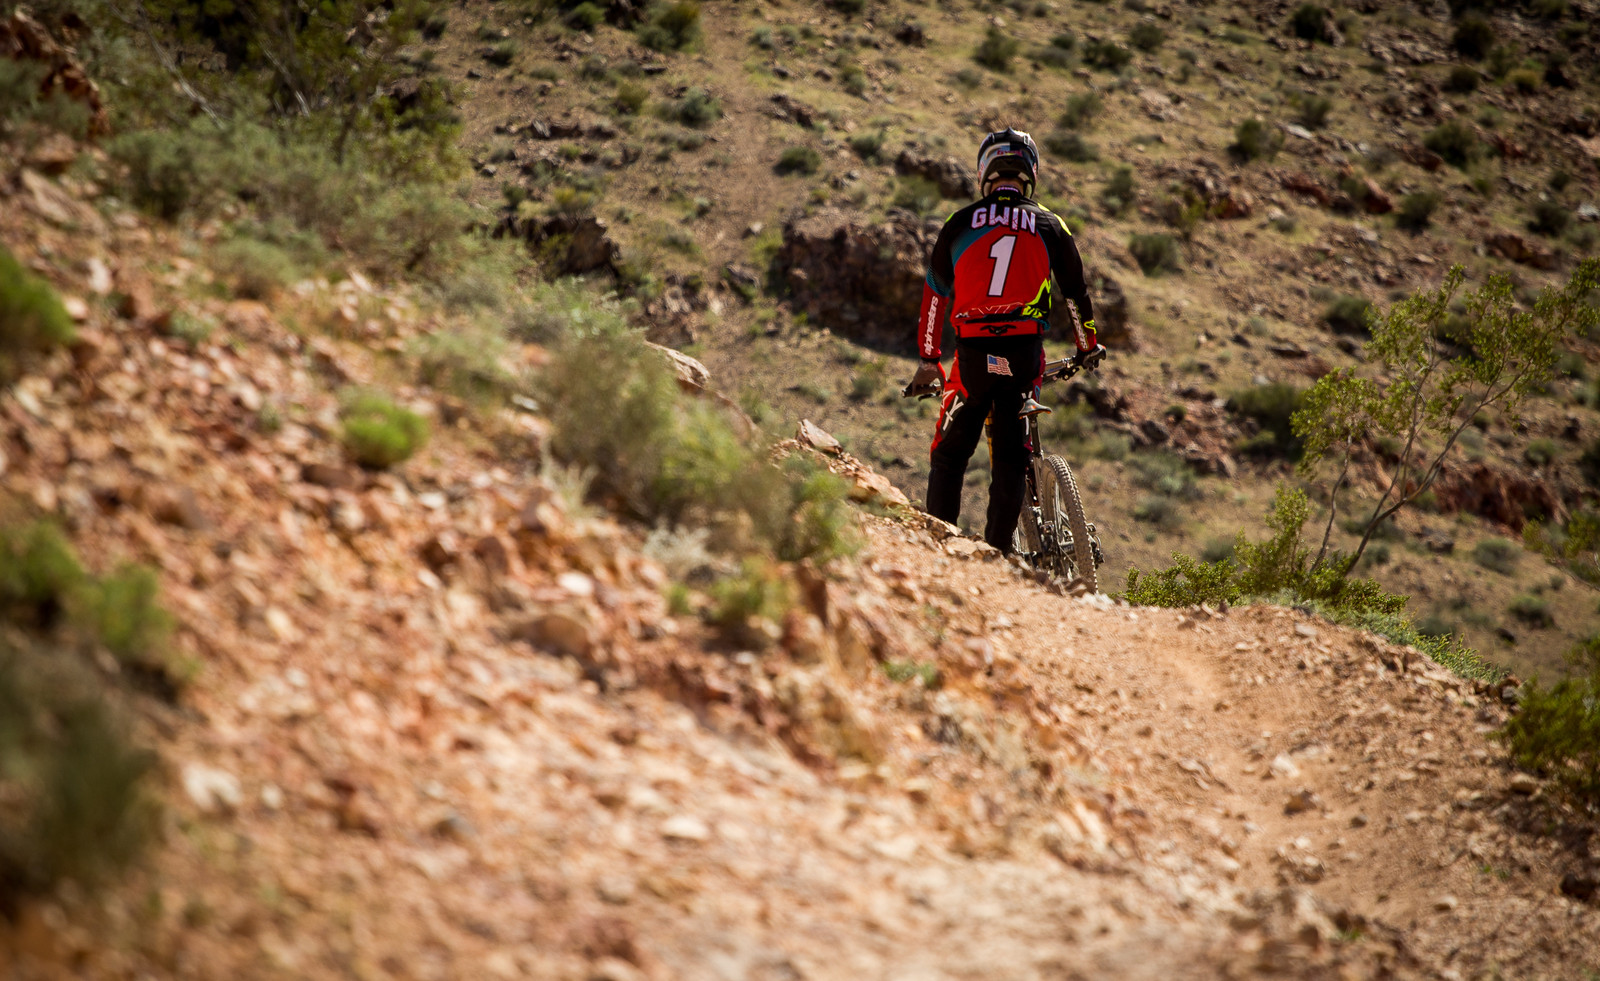 2017 Reaper Madness DH at Bootleg Canyon-8 - 2017 Reaper Madness DH Photos - Mountain Biking Pictures - Vital MTB